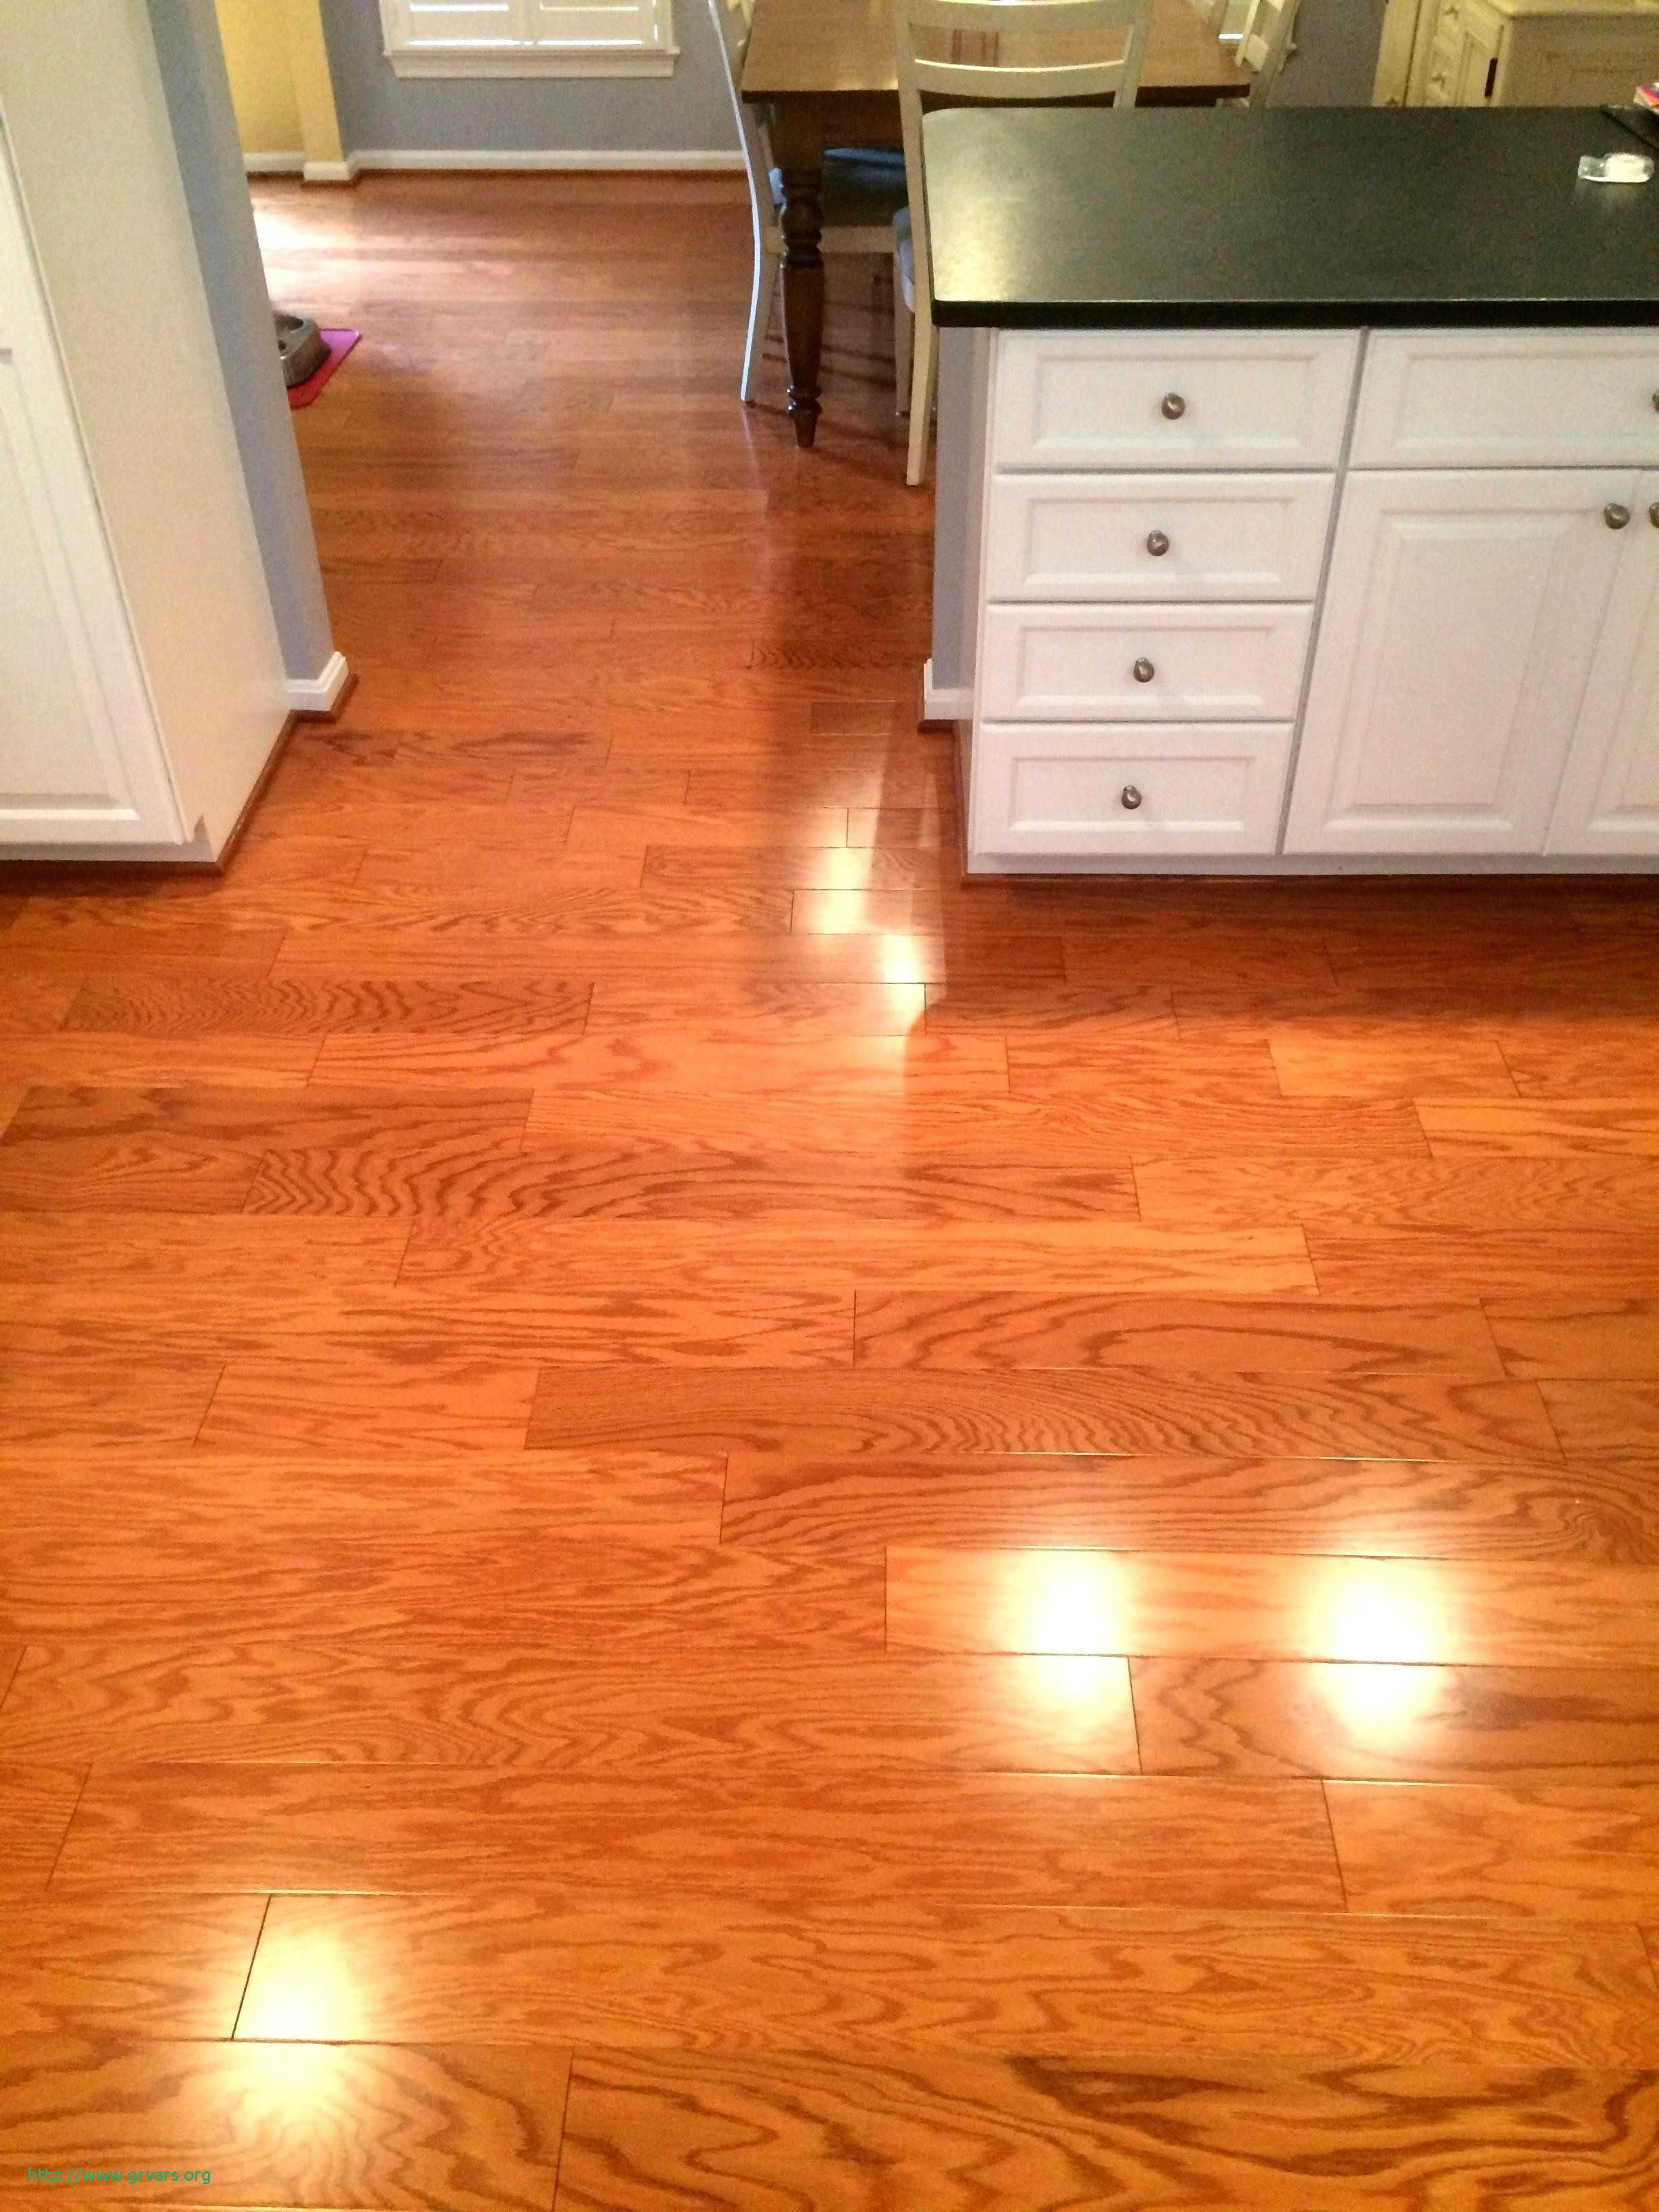 Hardwood Floor Finishing Supplies Of 17 A Lagant Concrete Wax Products Ideas Blog With